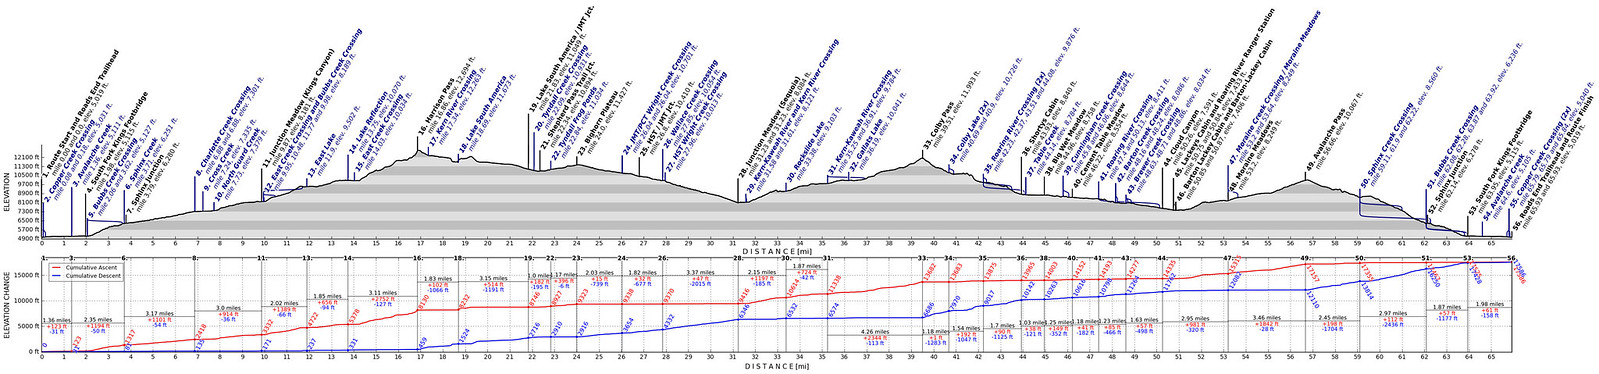 Elevation profile for the trip. It was a few more miles than this with the Bighorn Plateau off-trail bit.